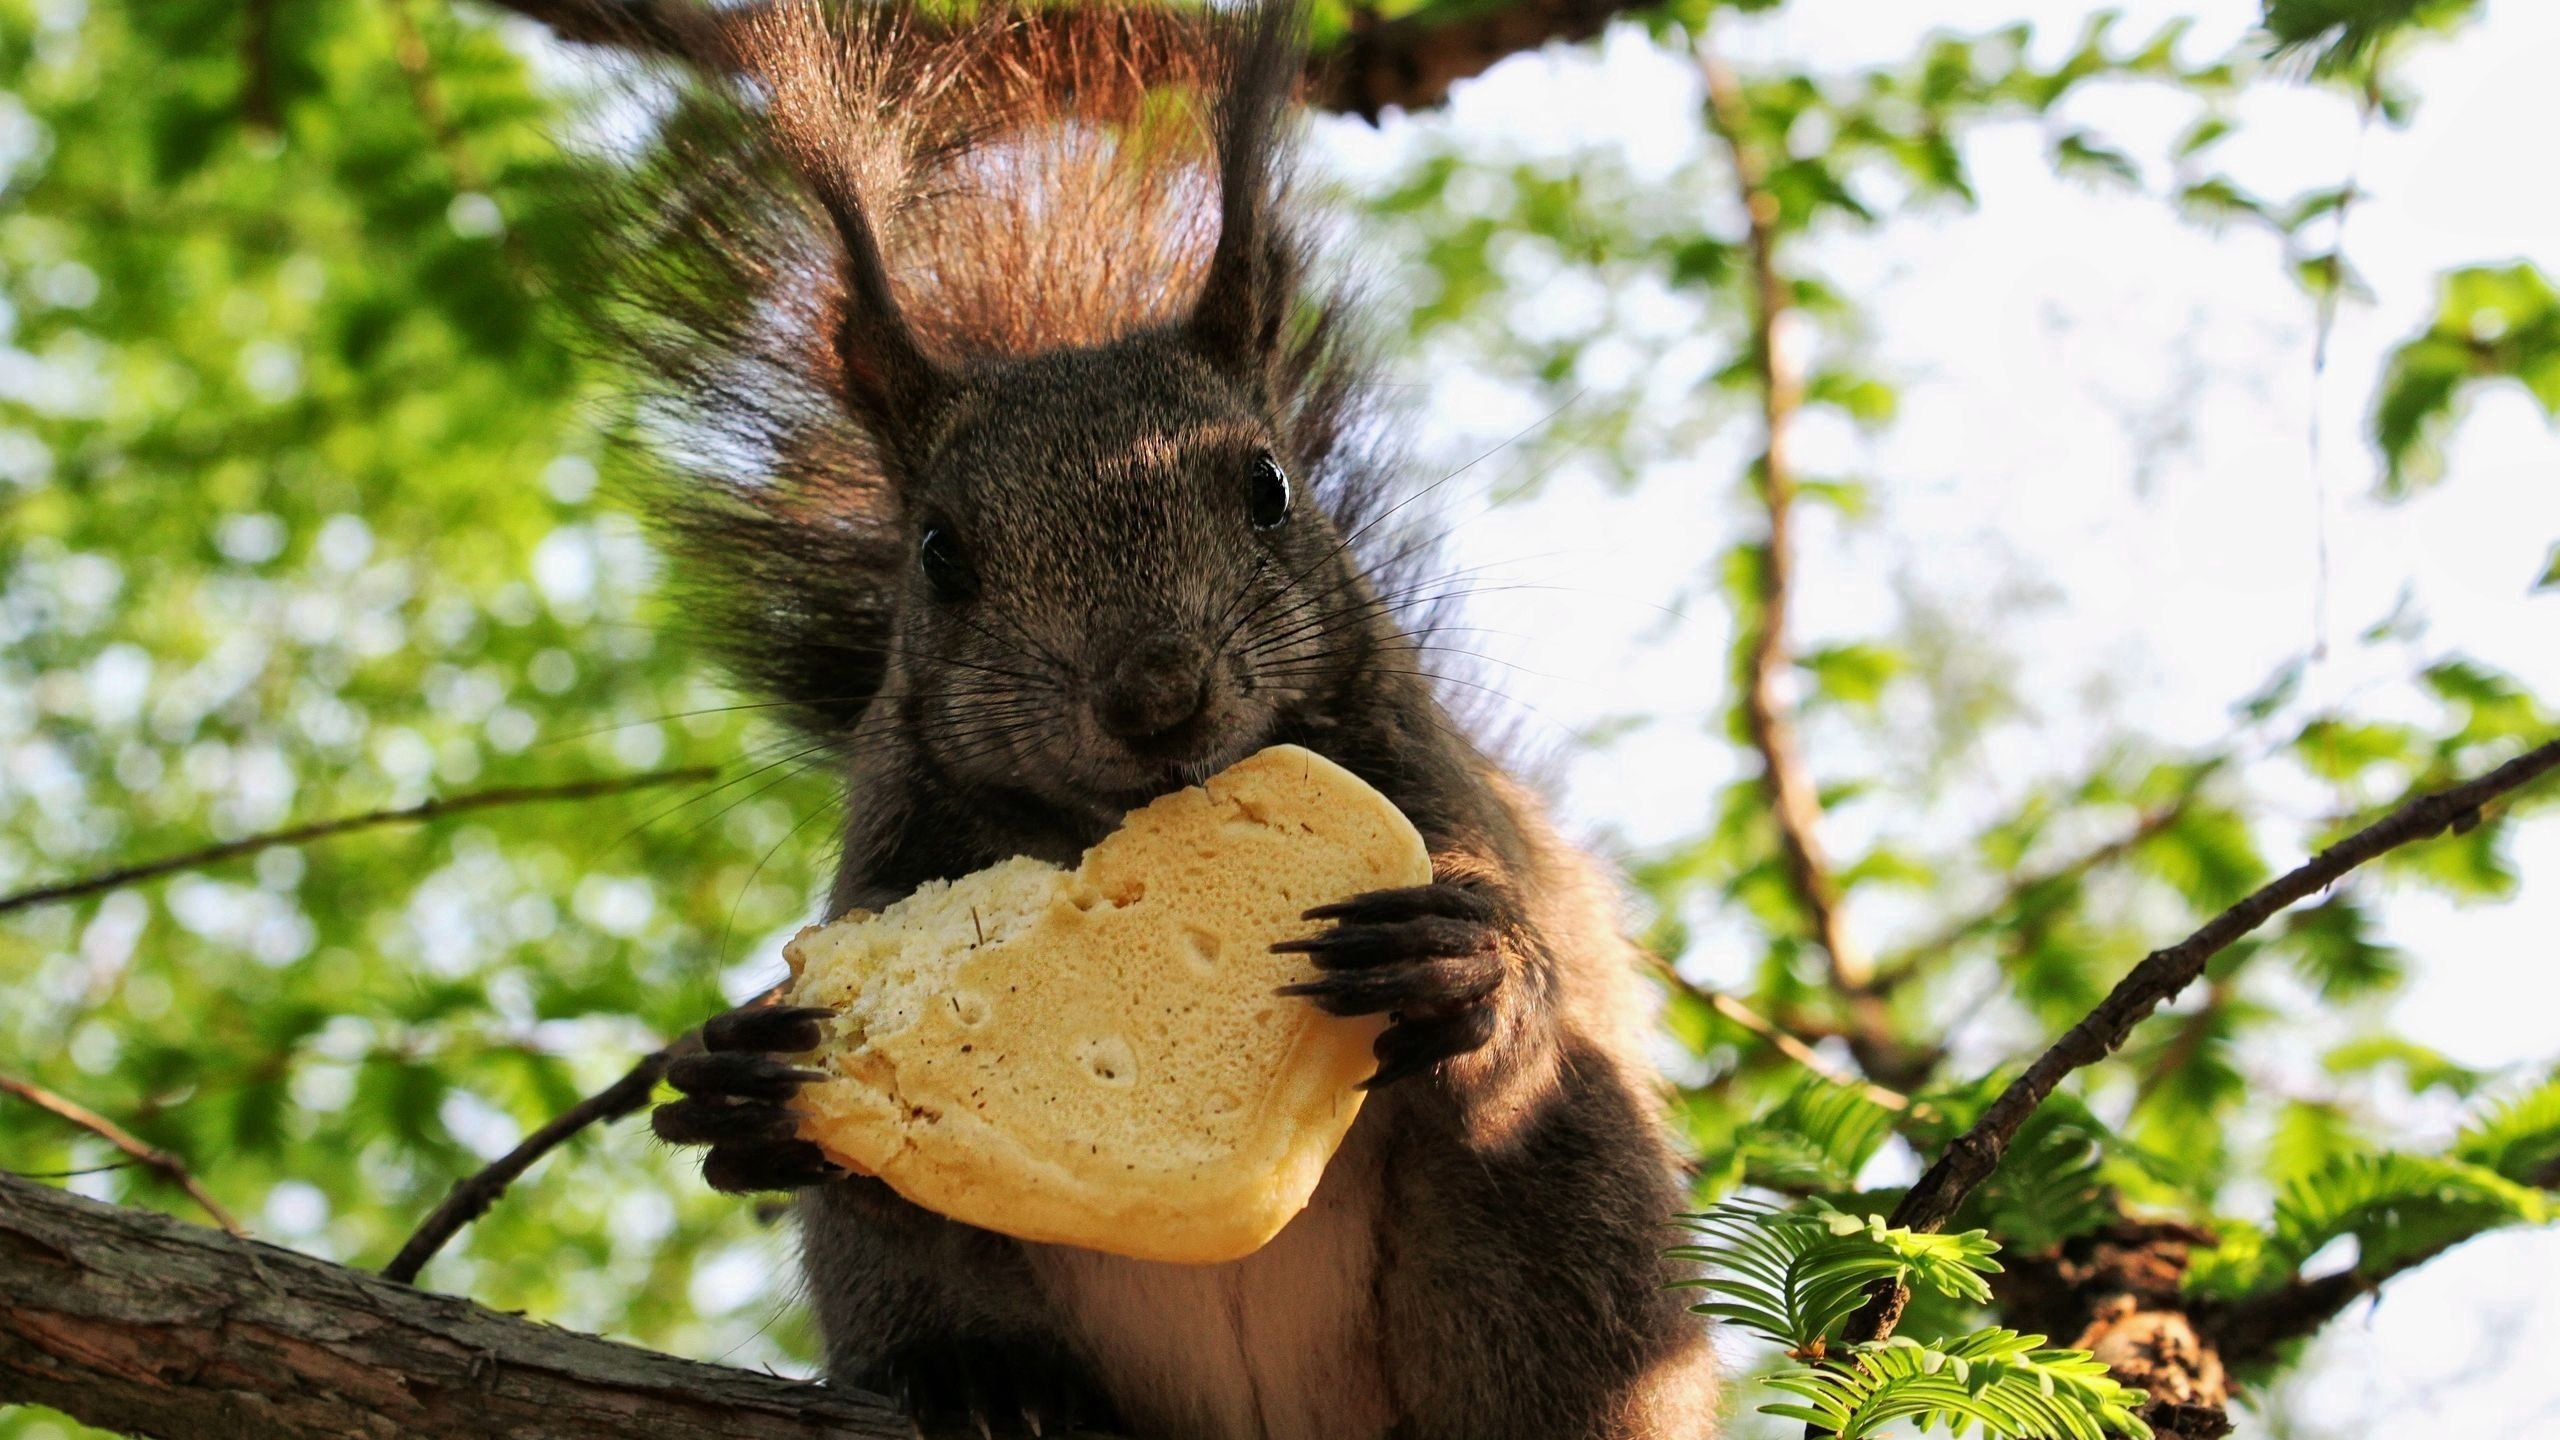 58821 download wallpaper Animals, Squirrel, Food, Cookies screensavers and pictures for free